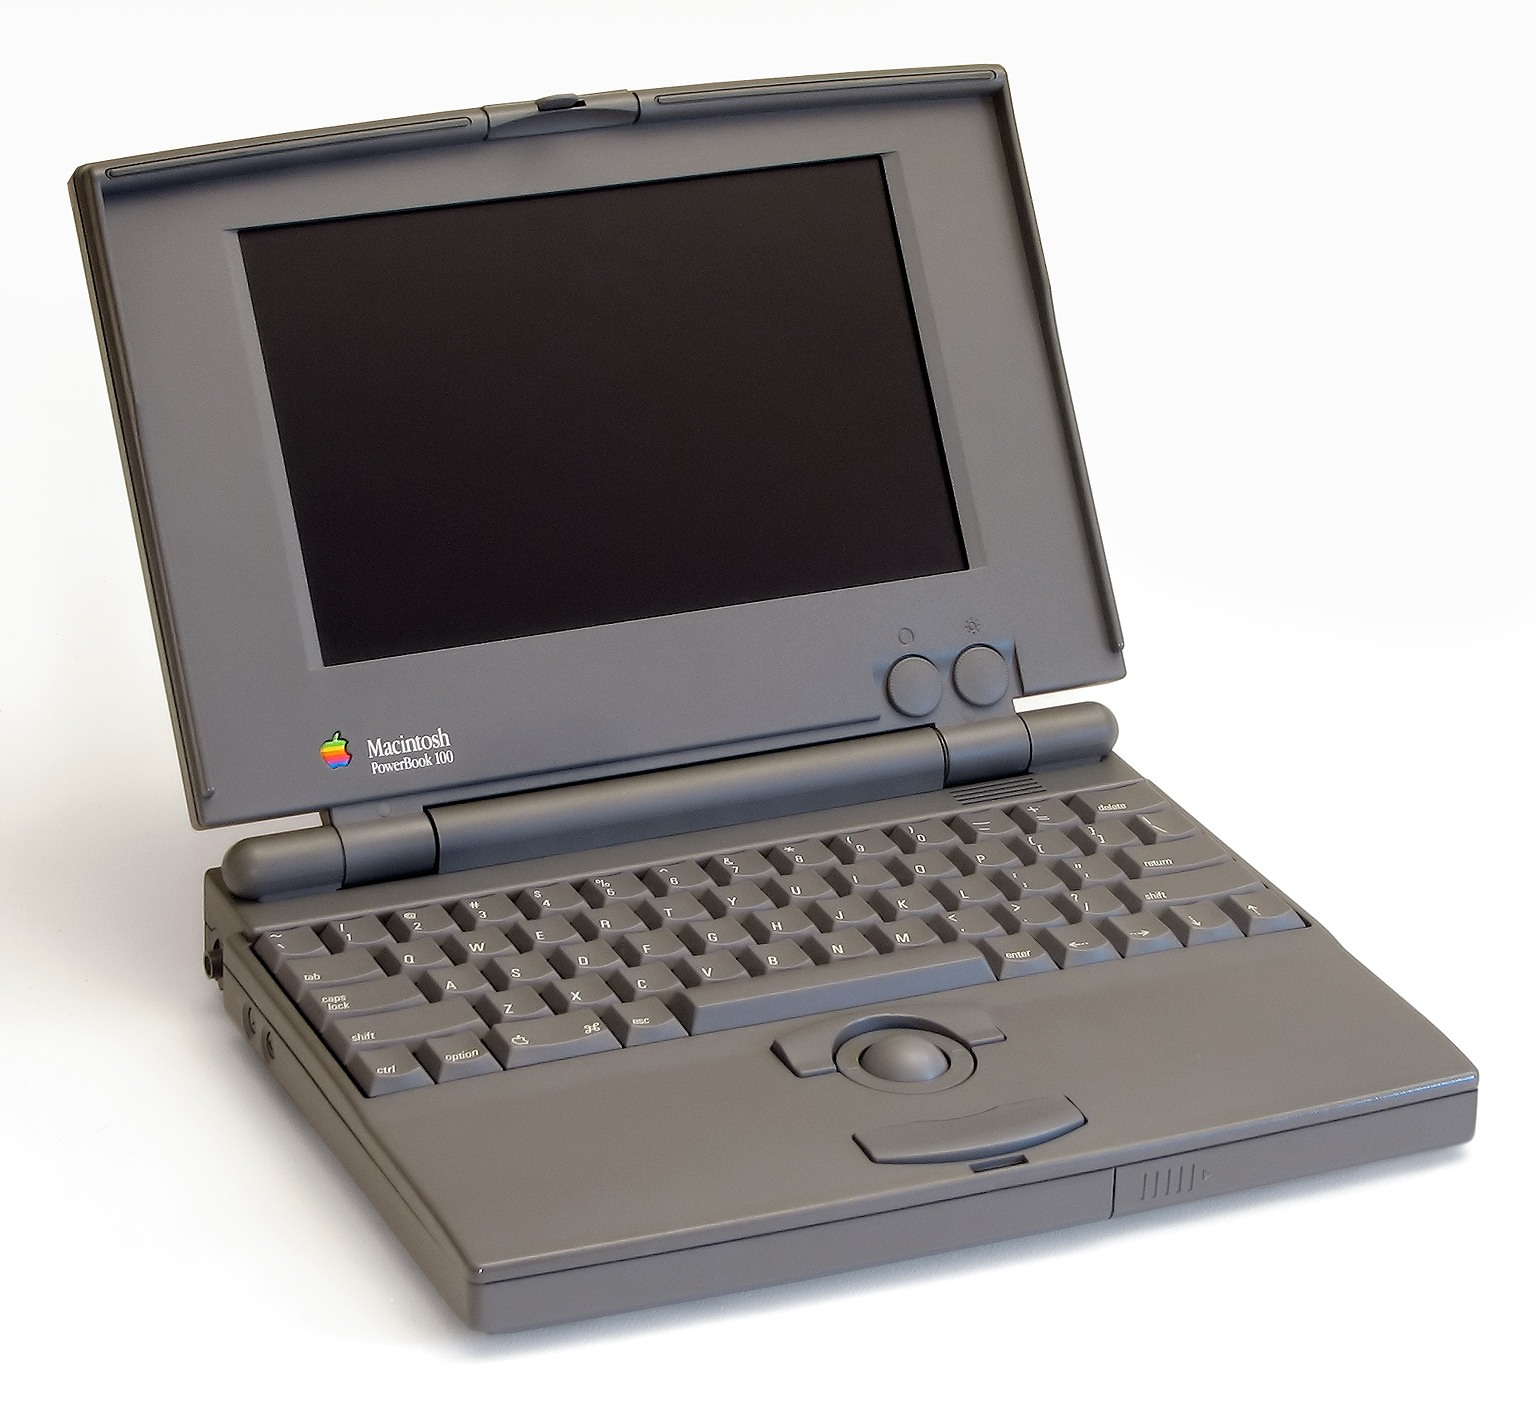 The entry-level PowerBook 100 fueled a laptop revolution.